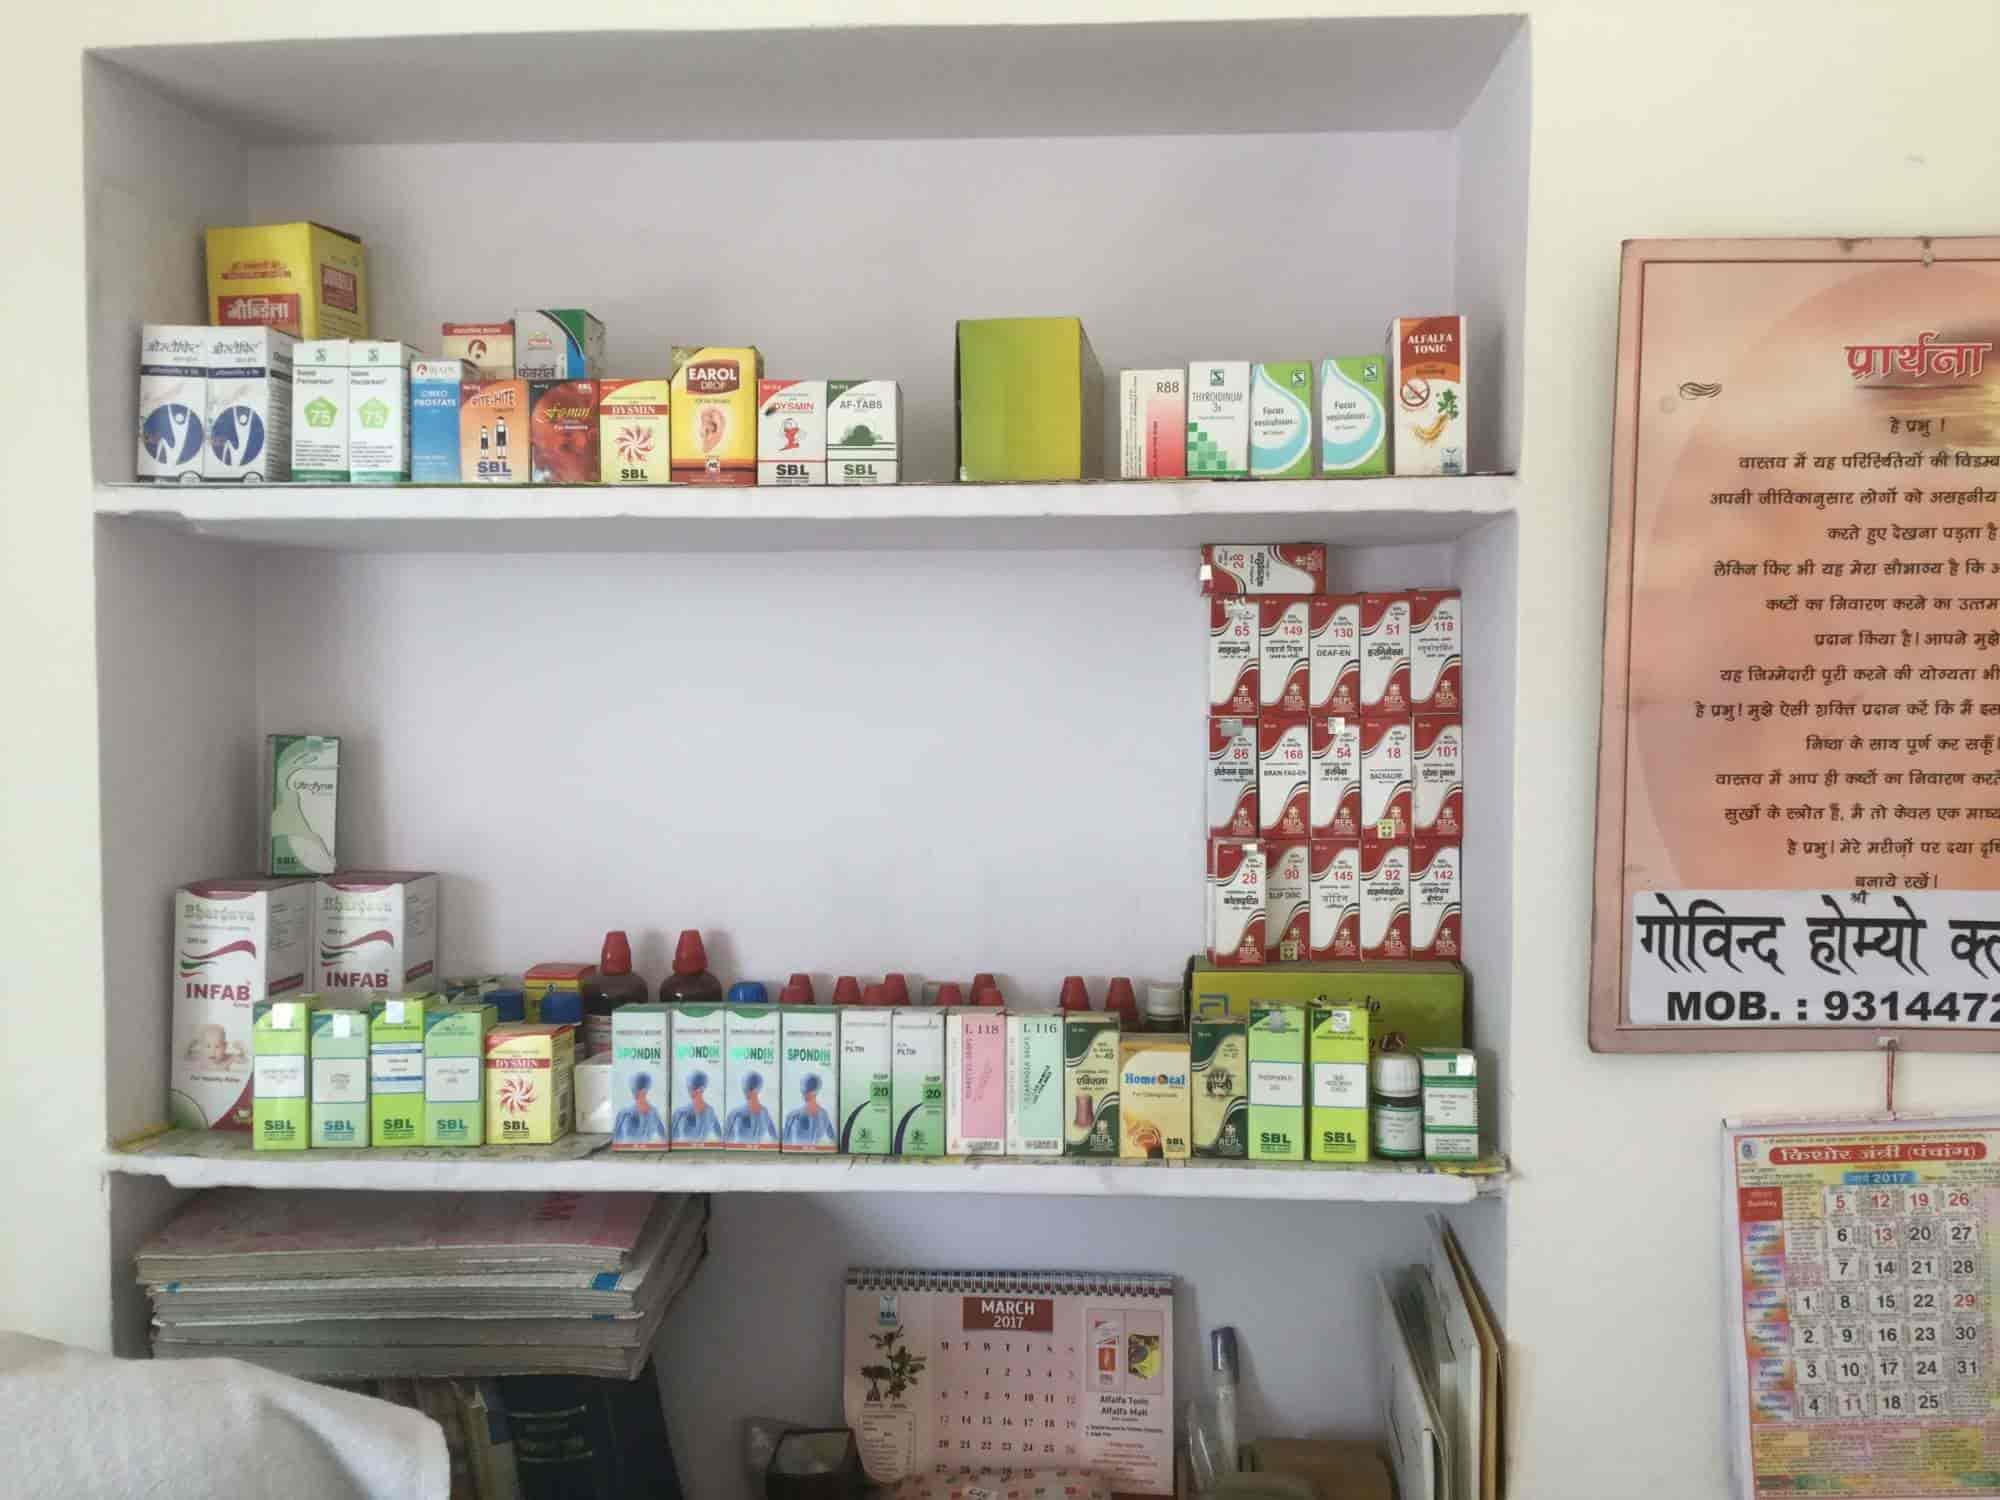 Govind Homeo Clinic Photos, Nehru Nagar, Jaipur- Pictures